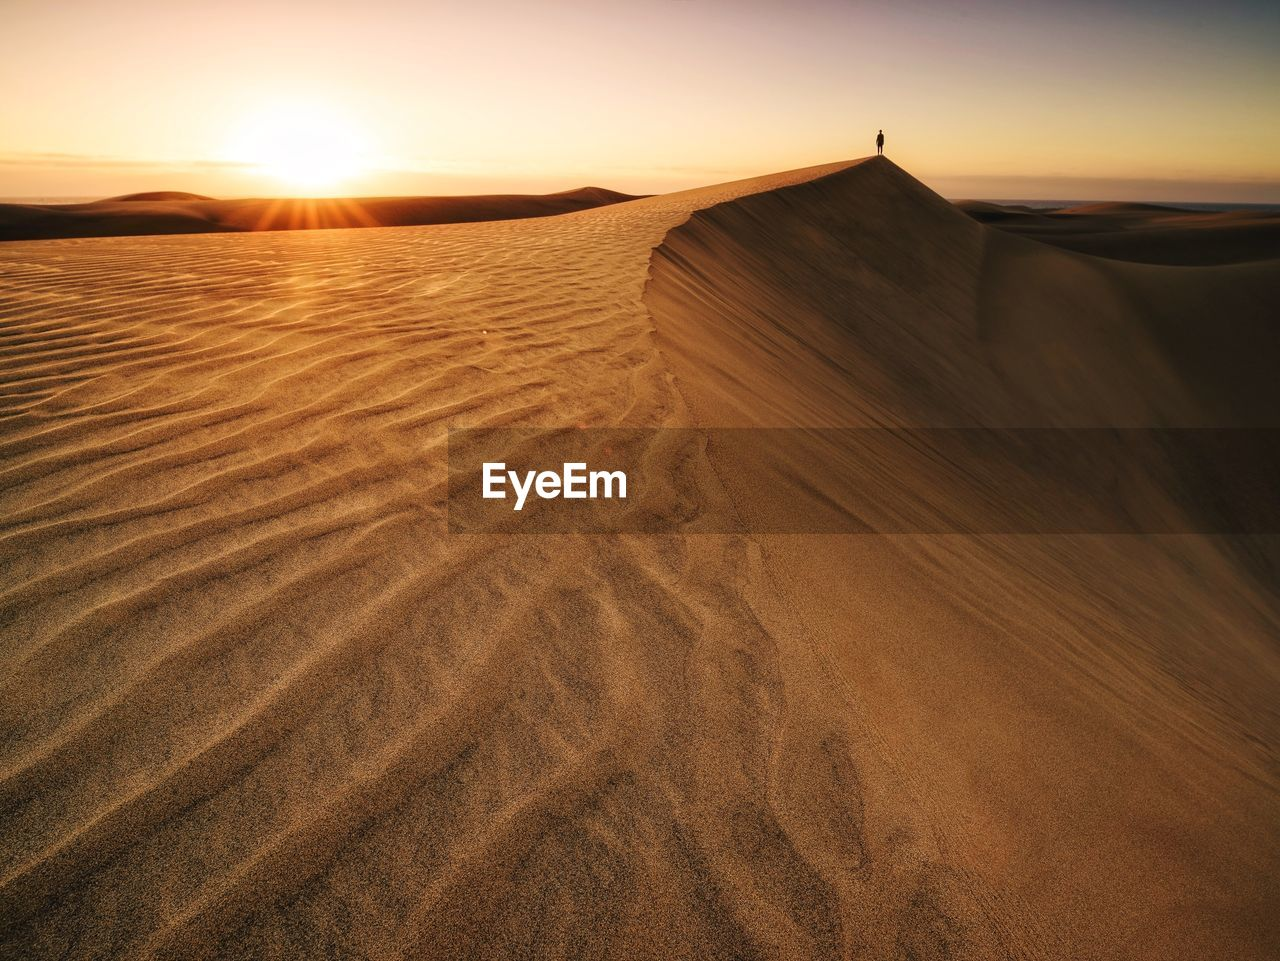 scenics - nature, sand, land, landscape, desert, sand dune, environment, beauty in nature, sky, tranquil scene, tranquility, sunset, arid climate, nature, climate, sunlight, non-urban scene, no people, remote, outdoors, atmospheric